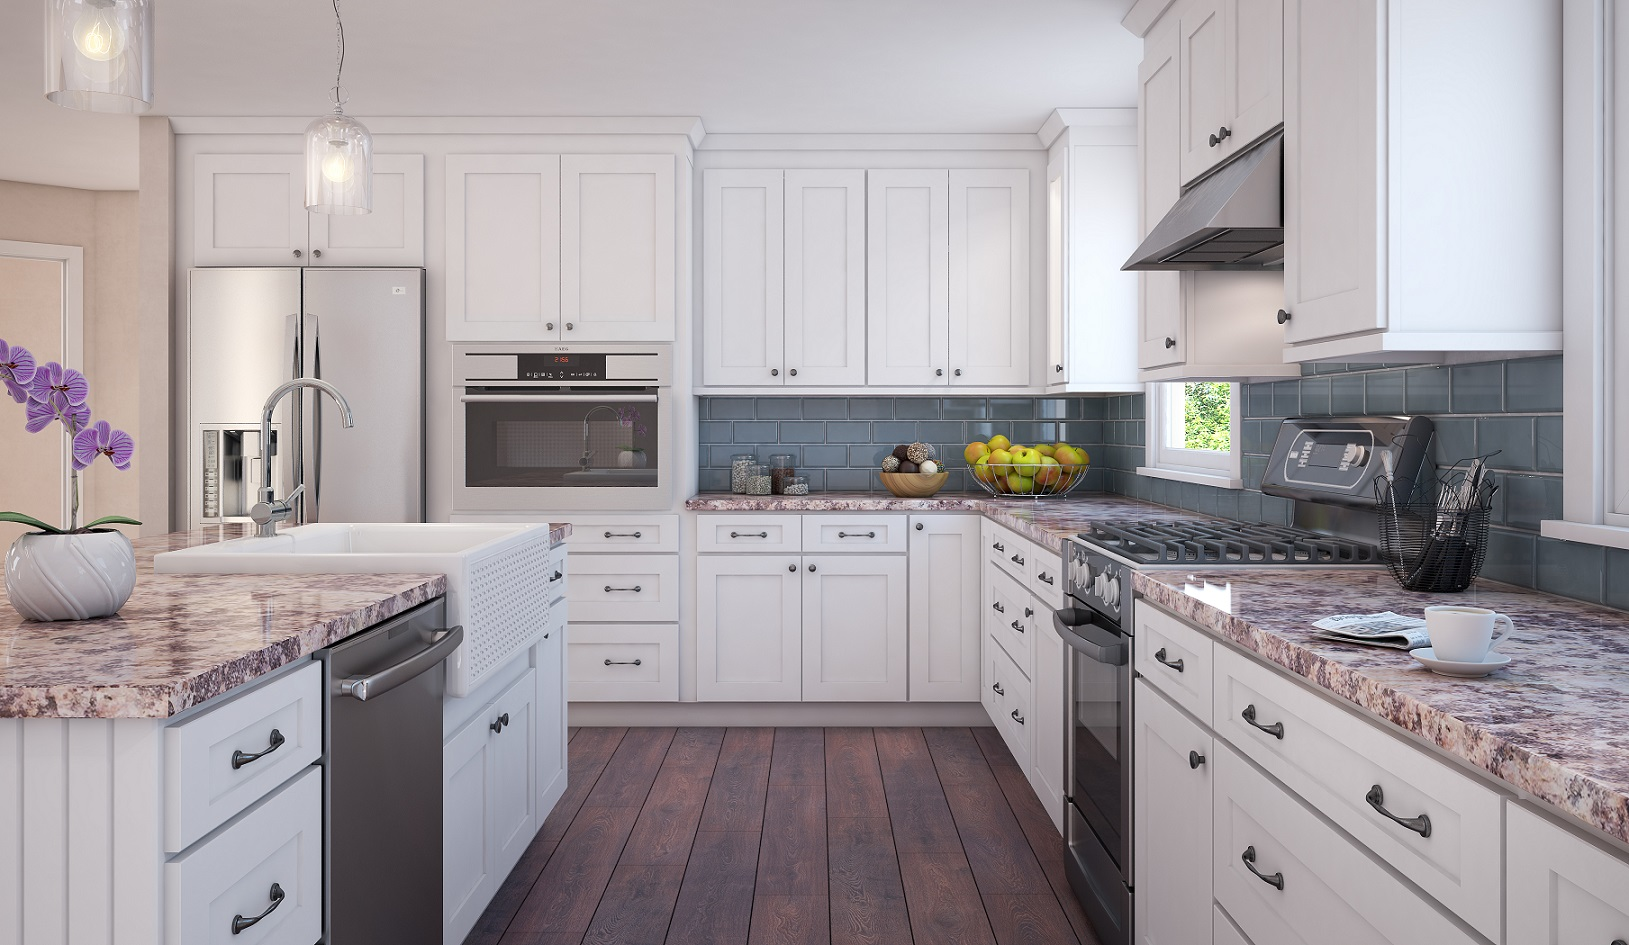 Kitchen cabinets tips for finding and buying the right cabinets for you alba kitchen design Kitchen and bath design center lake hopatcong nj